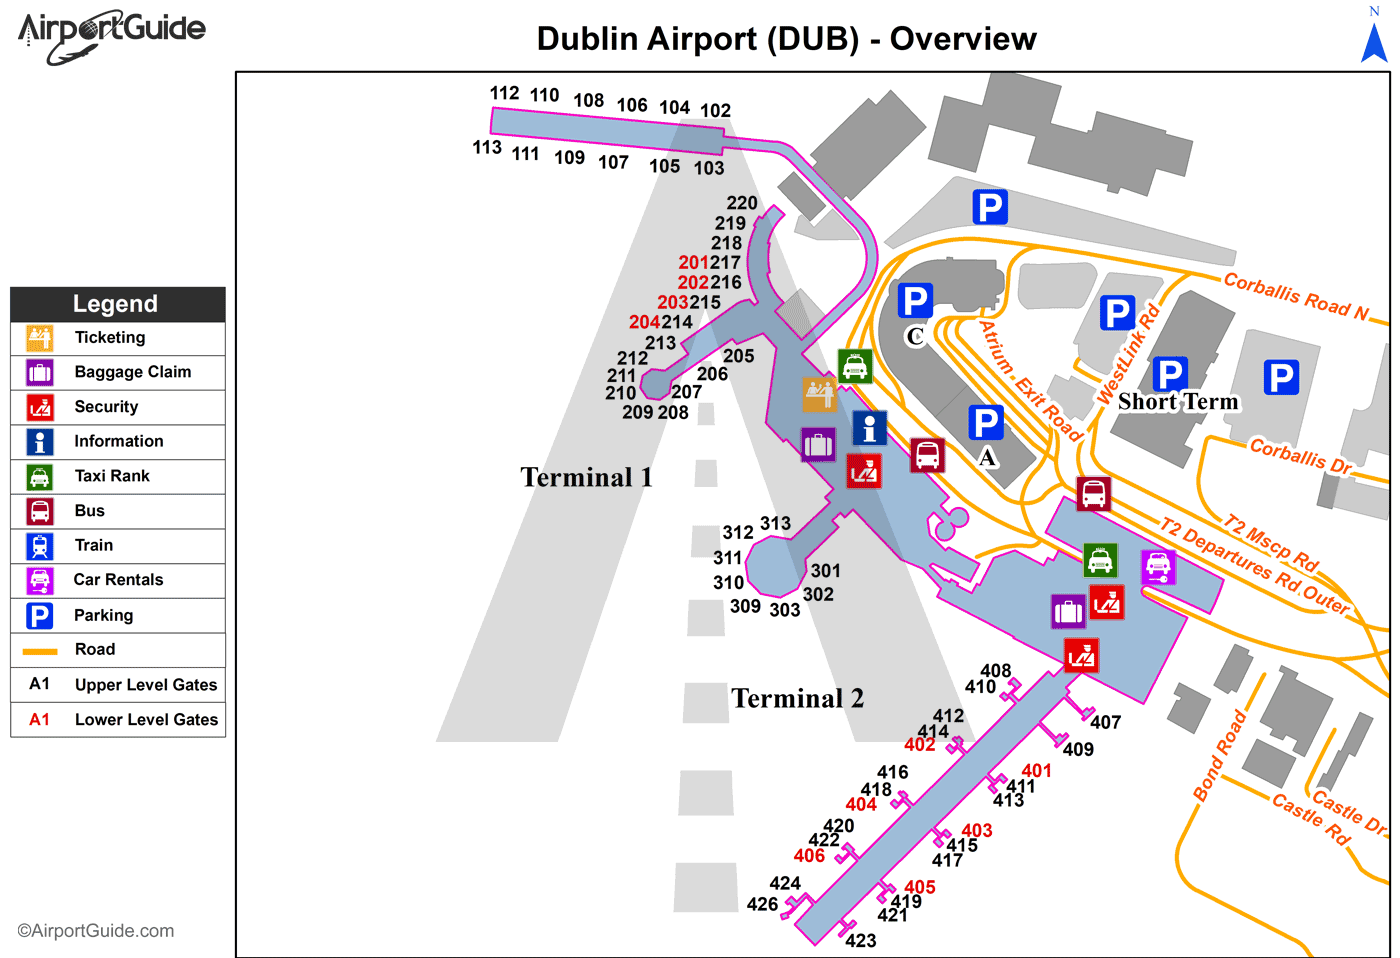 DUB Airport Terminal Map - Overview